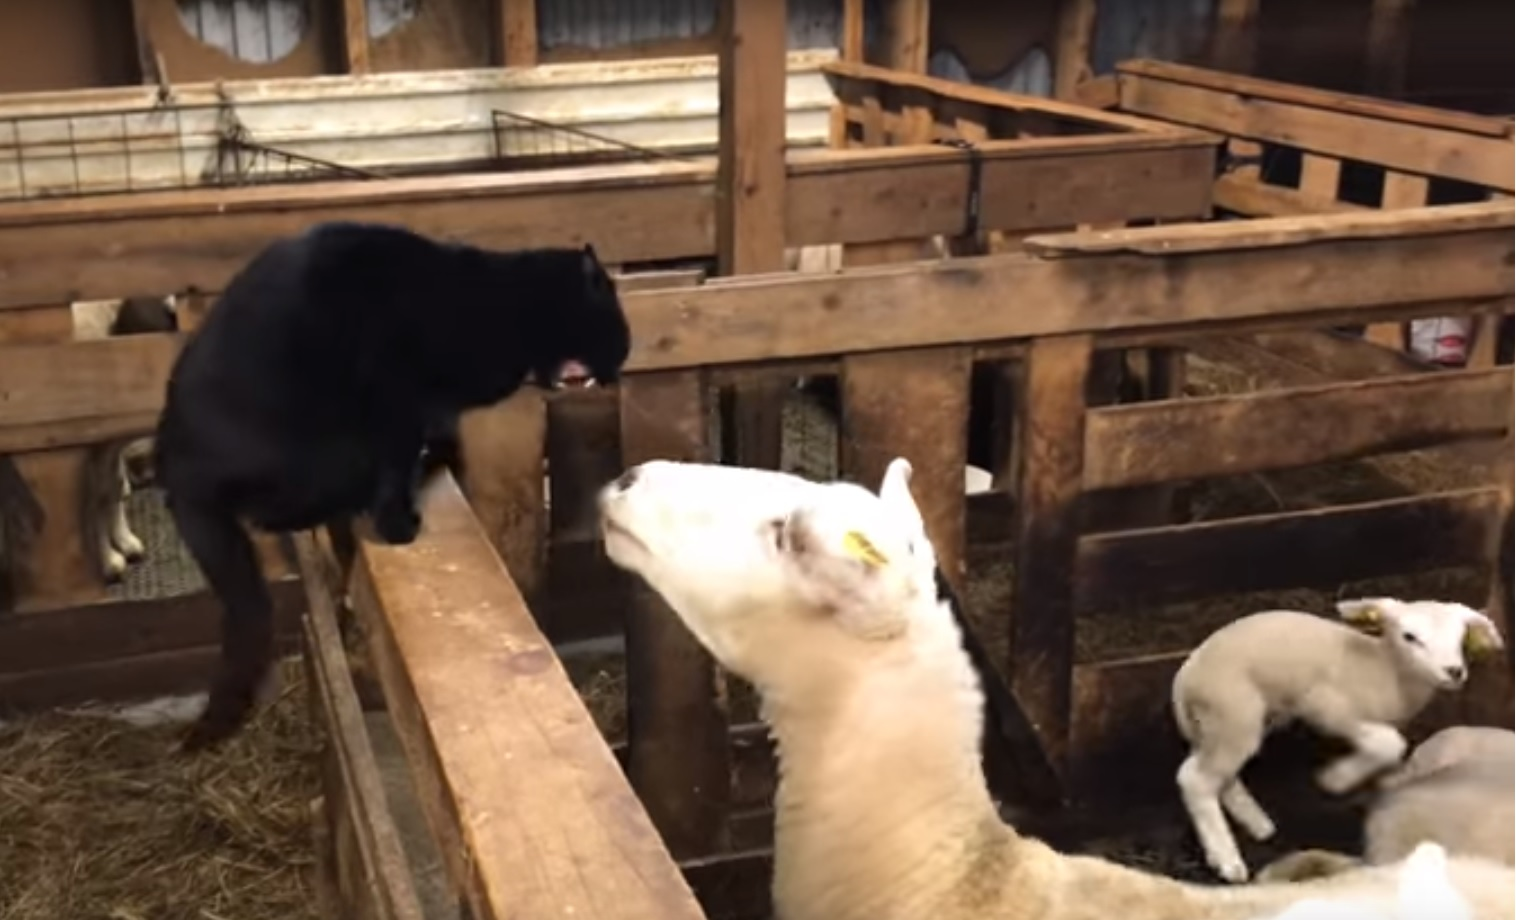 Sheep versus cat